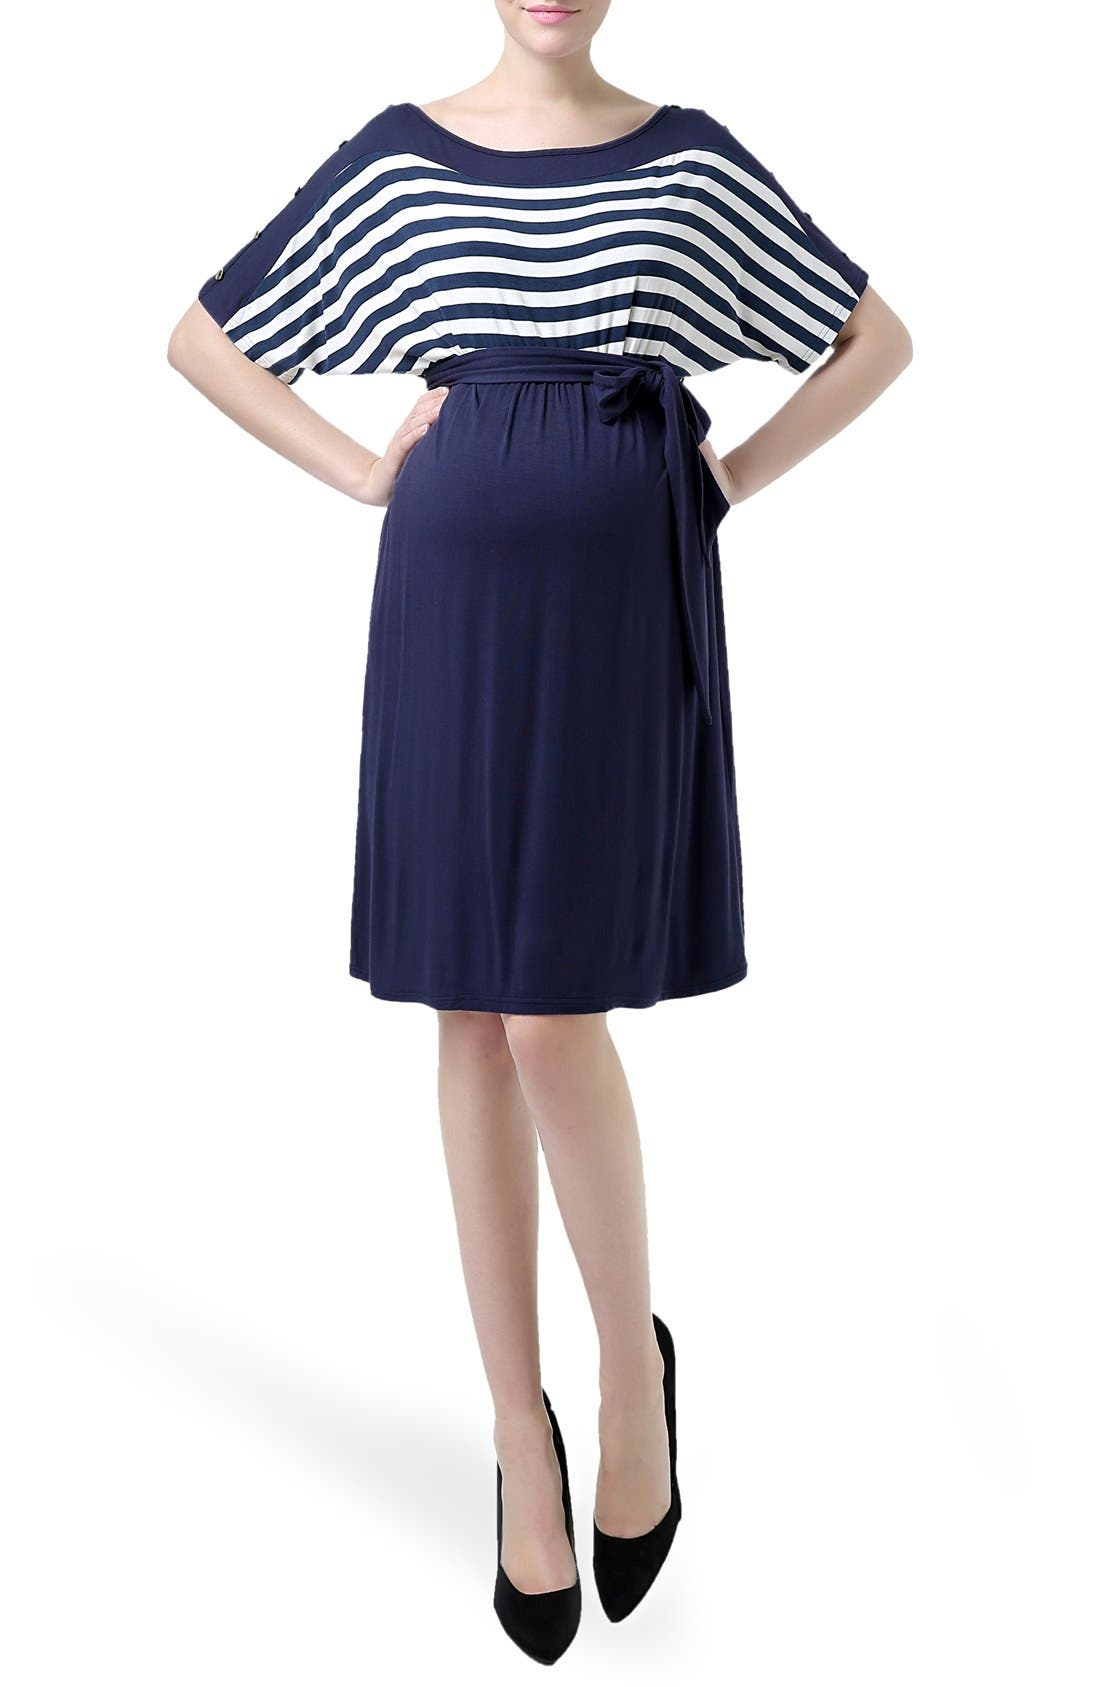 KIMI AND KAI 'Willow' Stripe Maternity Dress